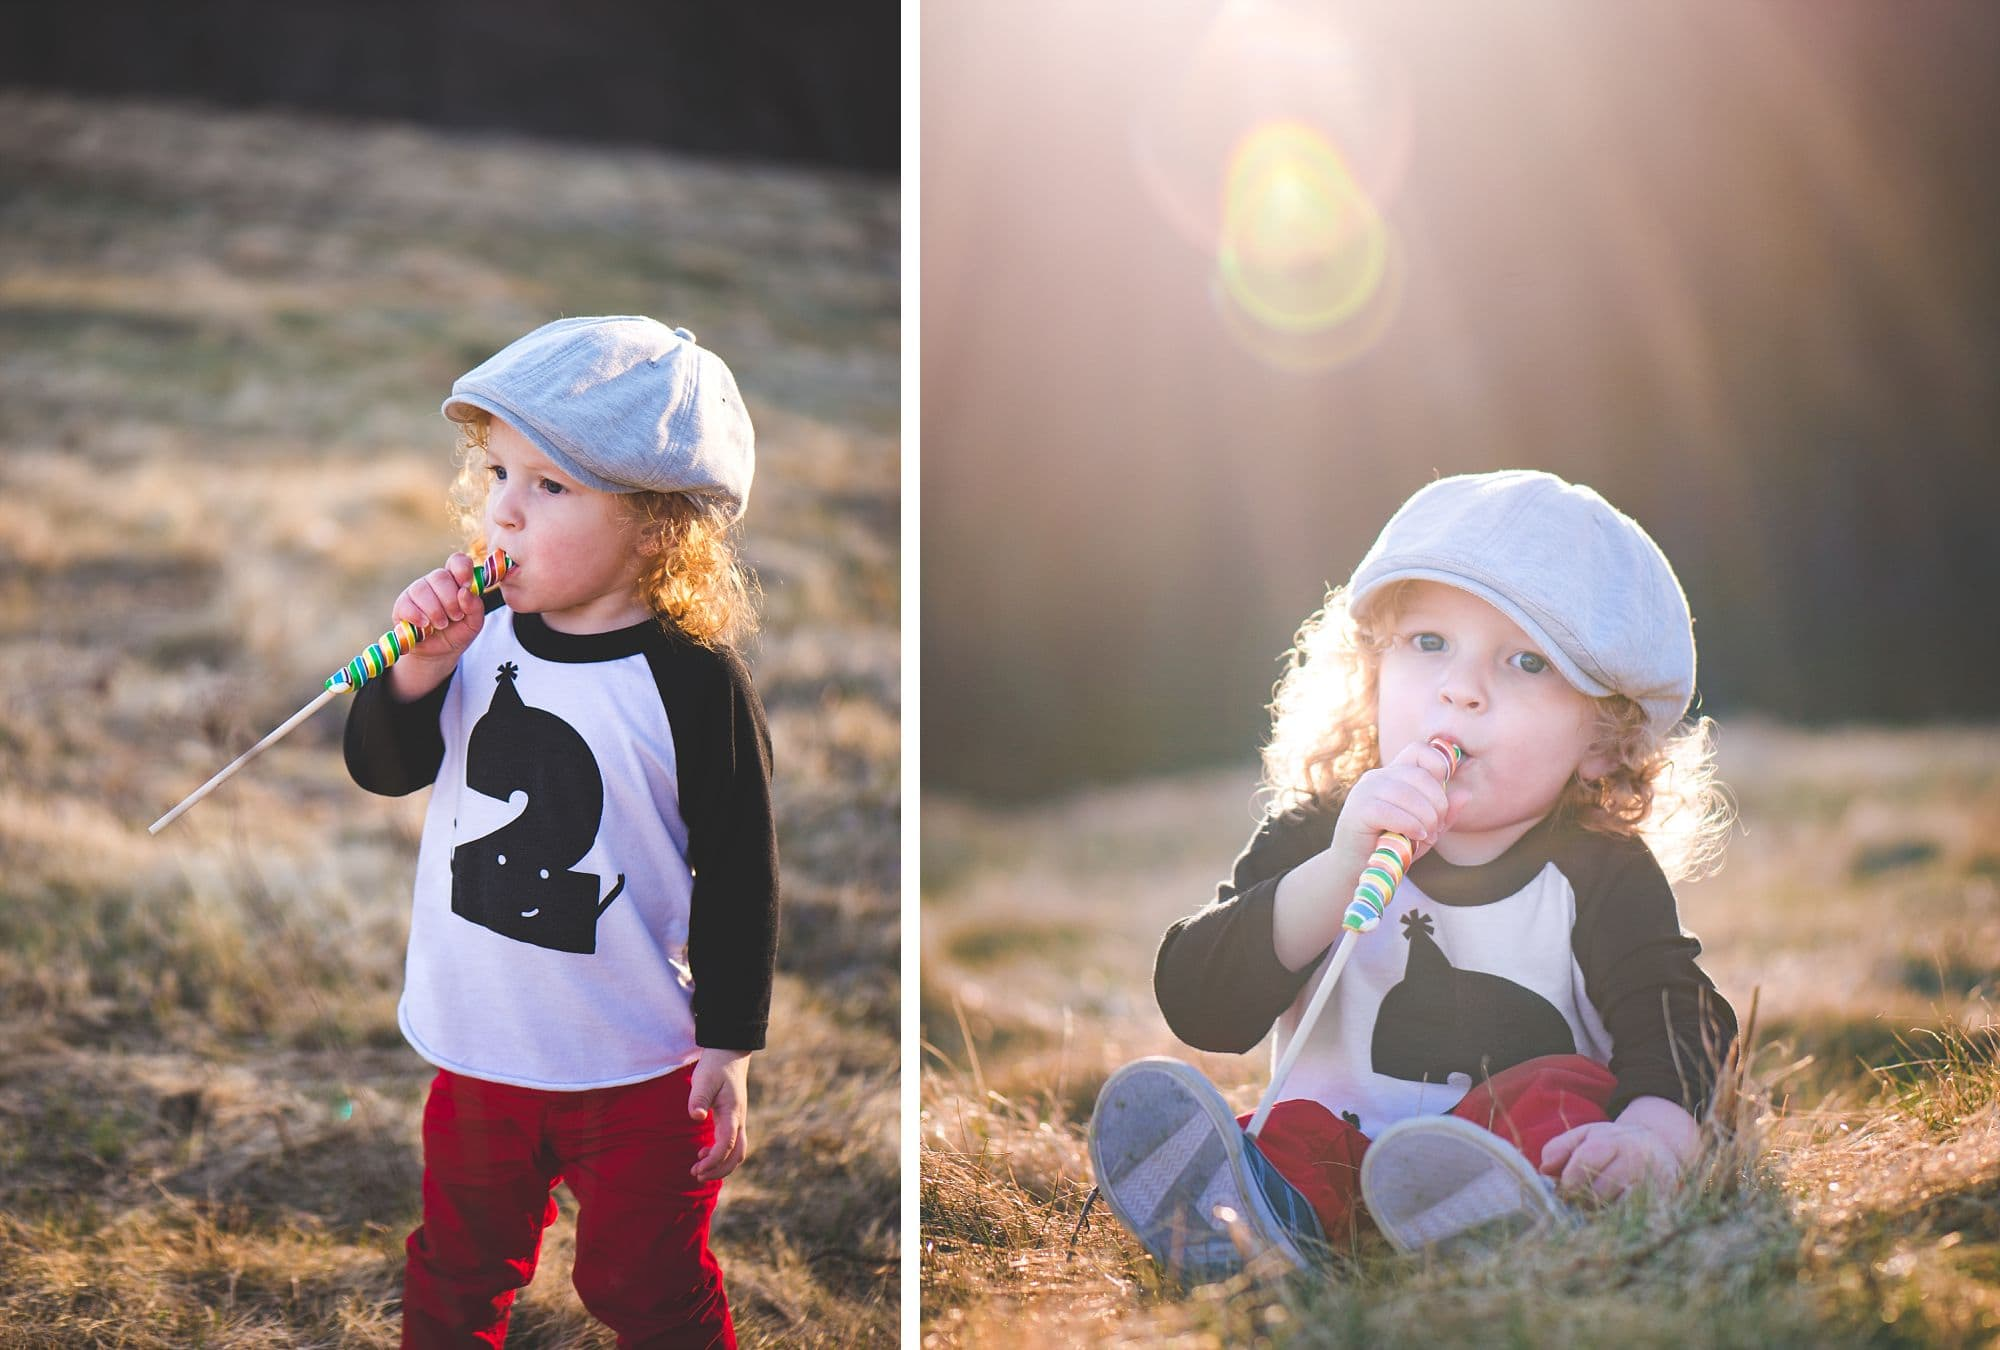 Two year old boy in a hat sits in a field with a beautiful sunflare in the portrait